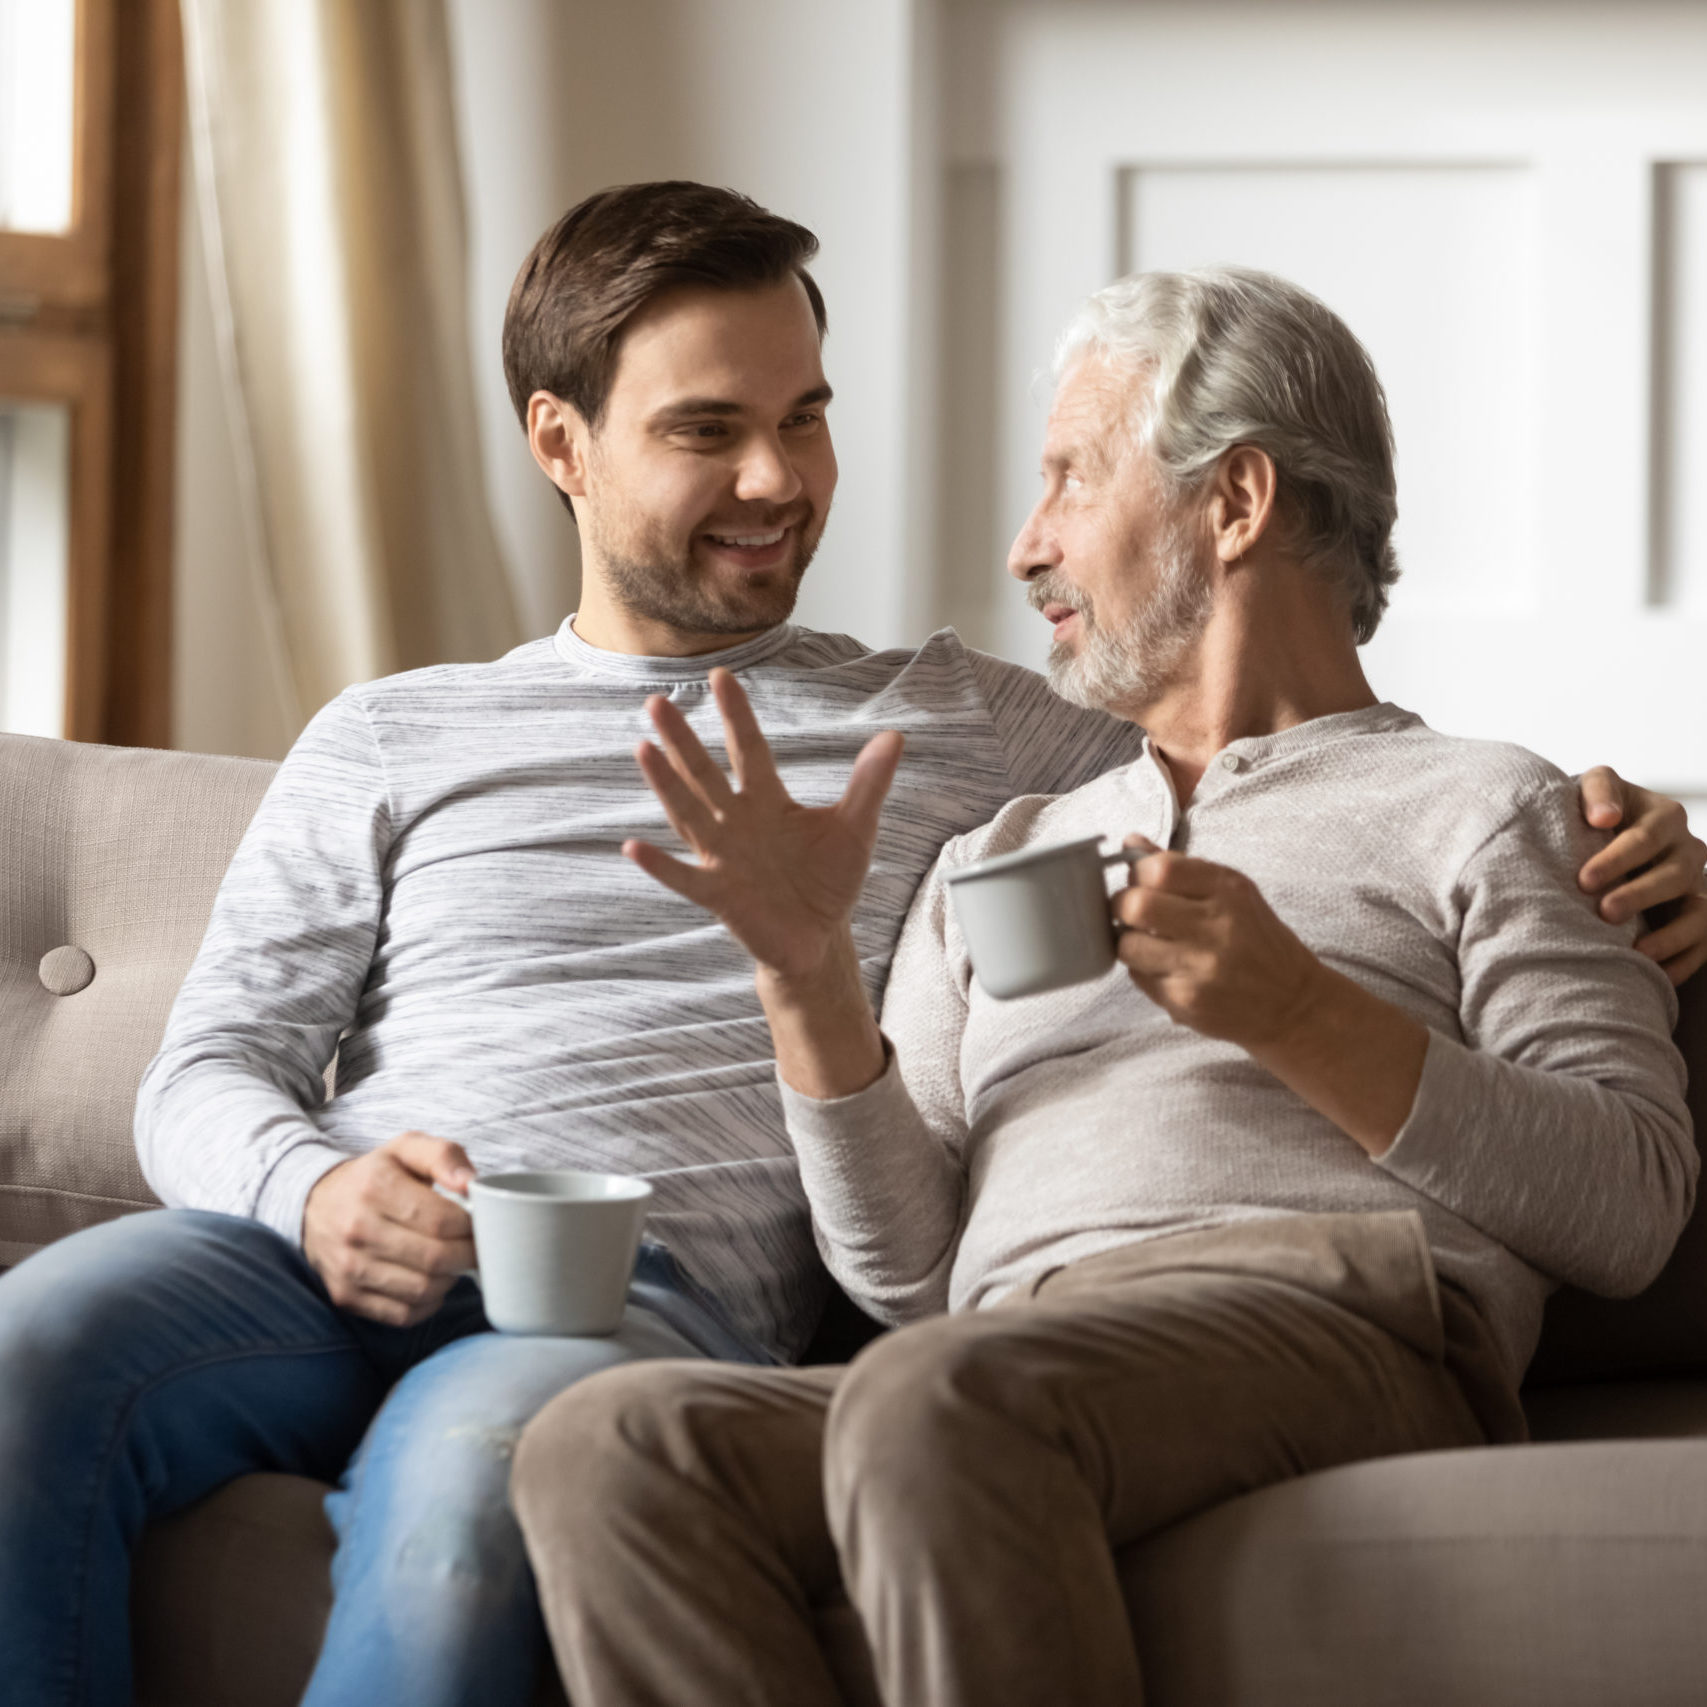 Happy mature father and adult son drinking tea together, chatting, enjoying pleasant conversation, leisure time, sitting on cozy couch at home, smiling grandfather and grandson holding cups